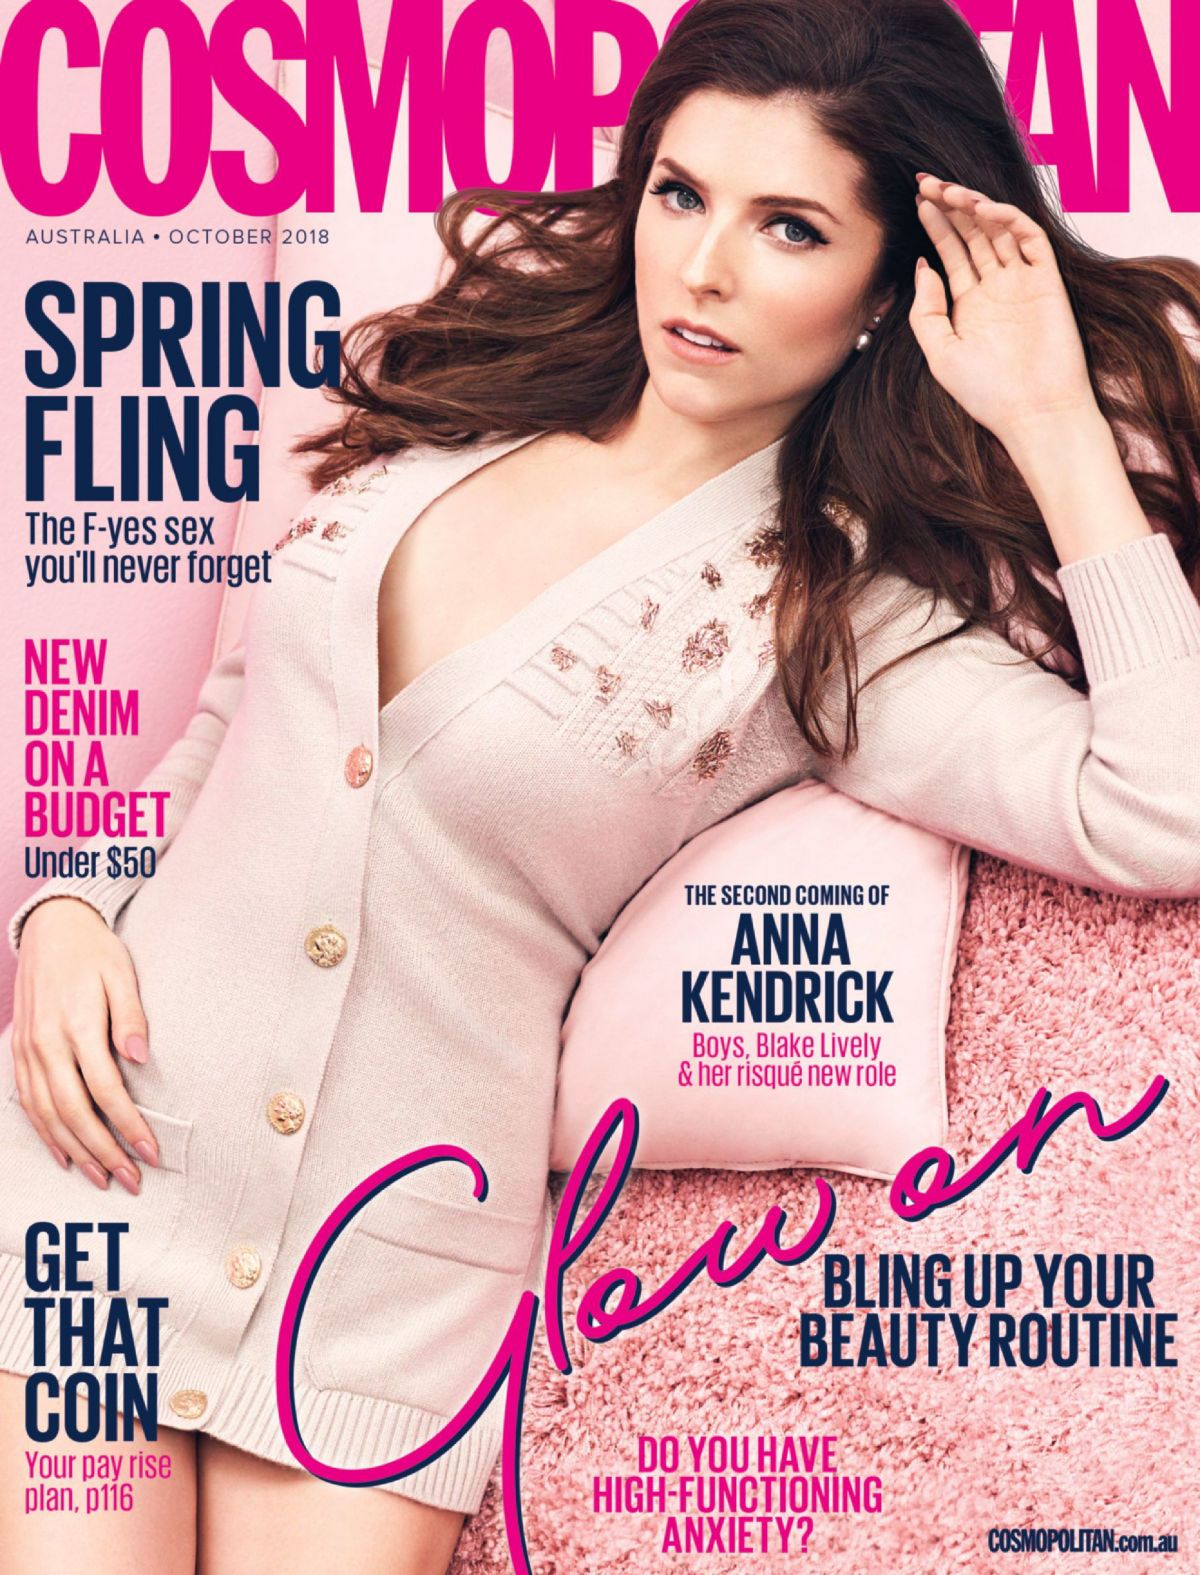 anna-kendrick-in-cosmopolitan-magazine-australia-october-2018-issue-3.jpg